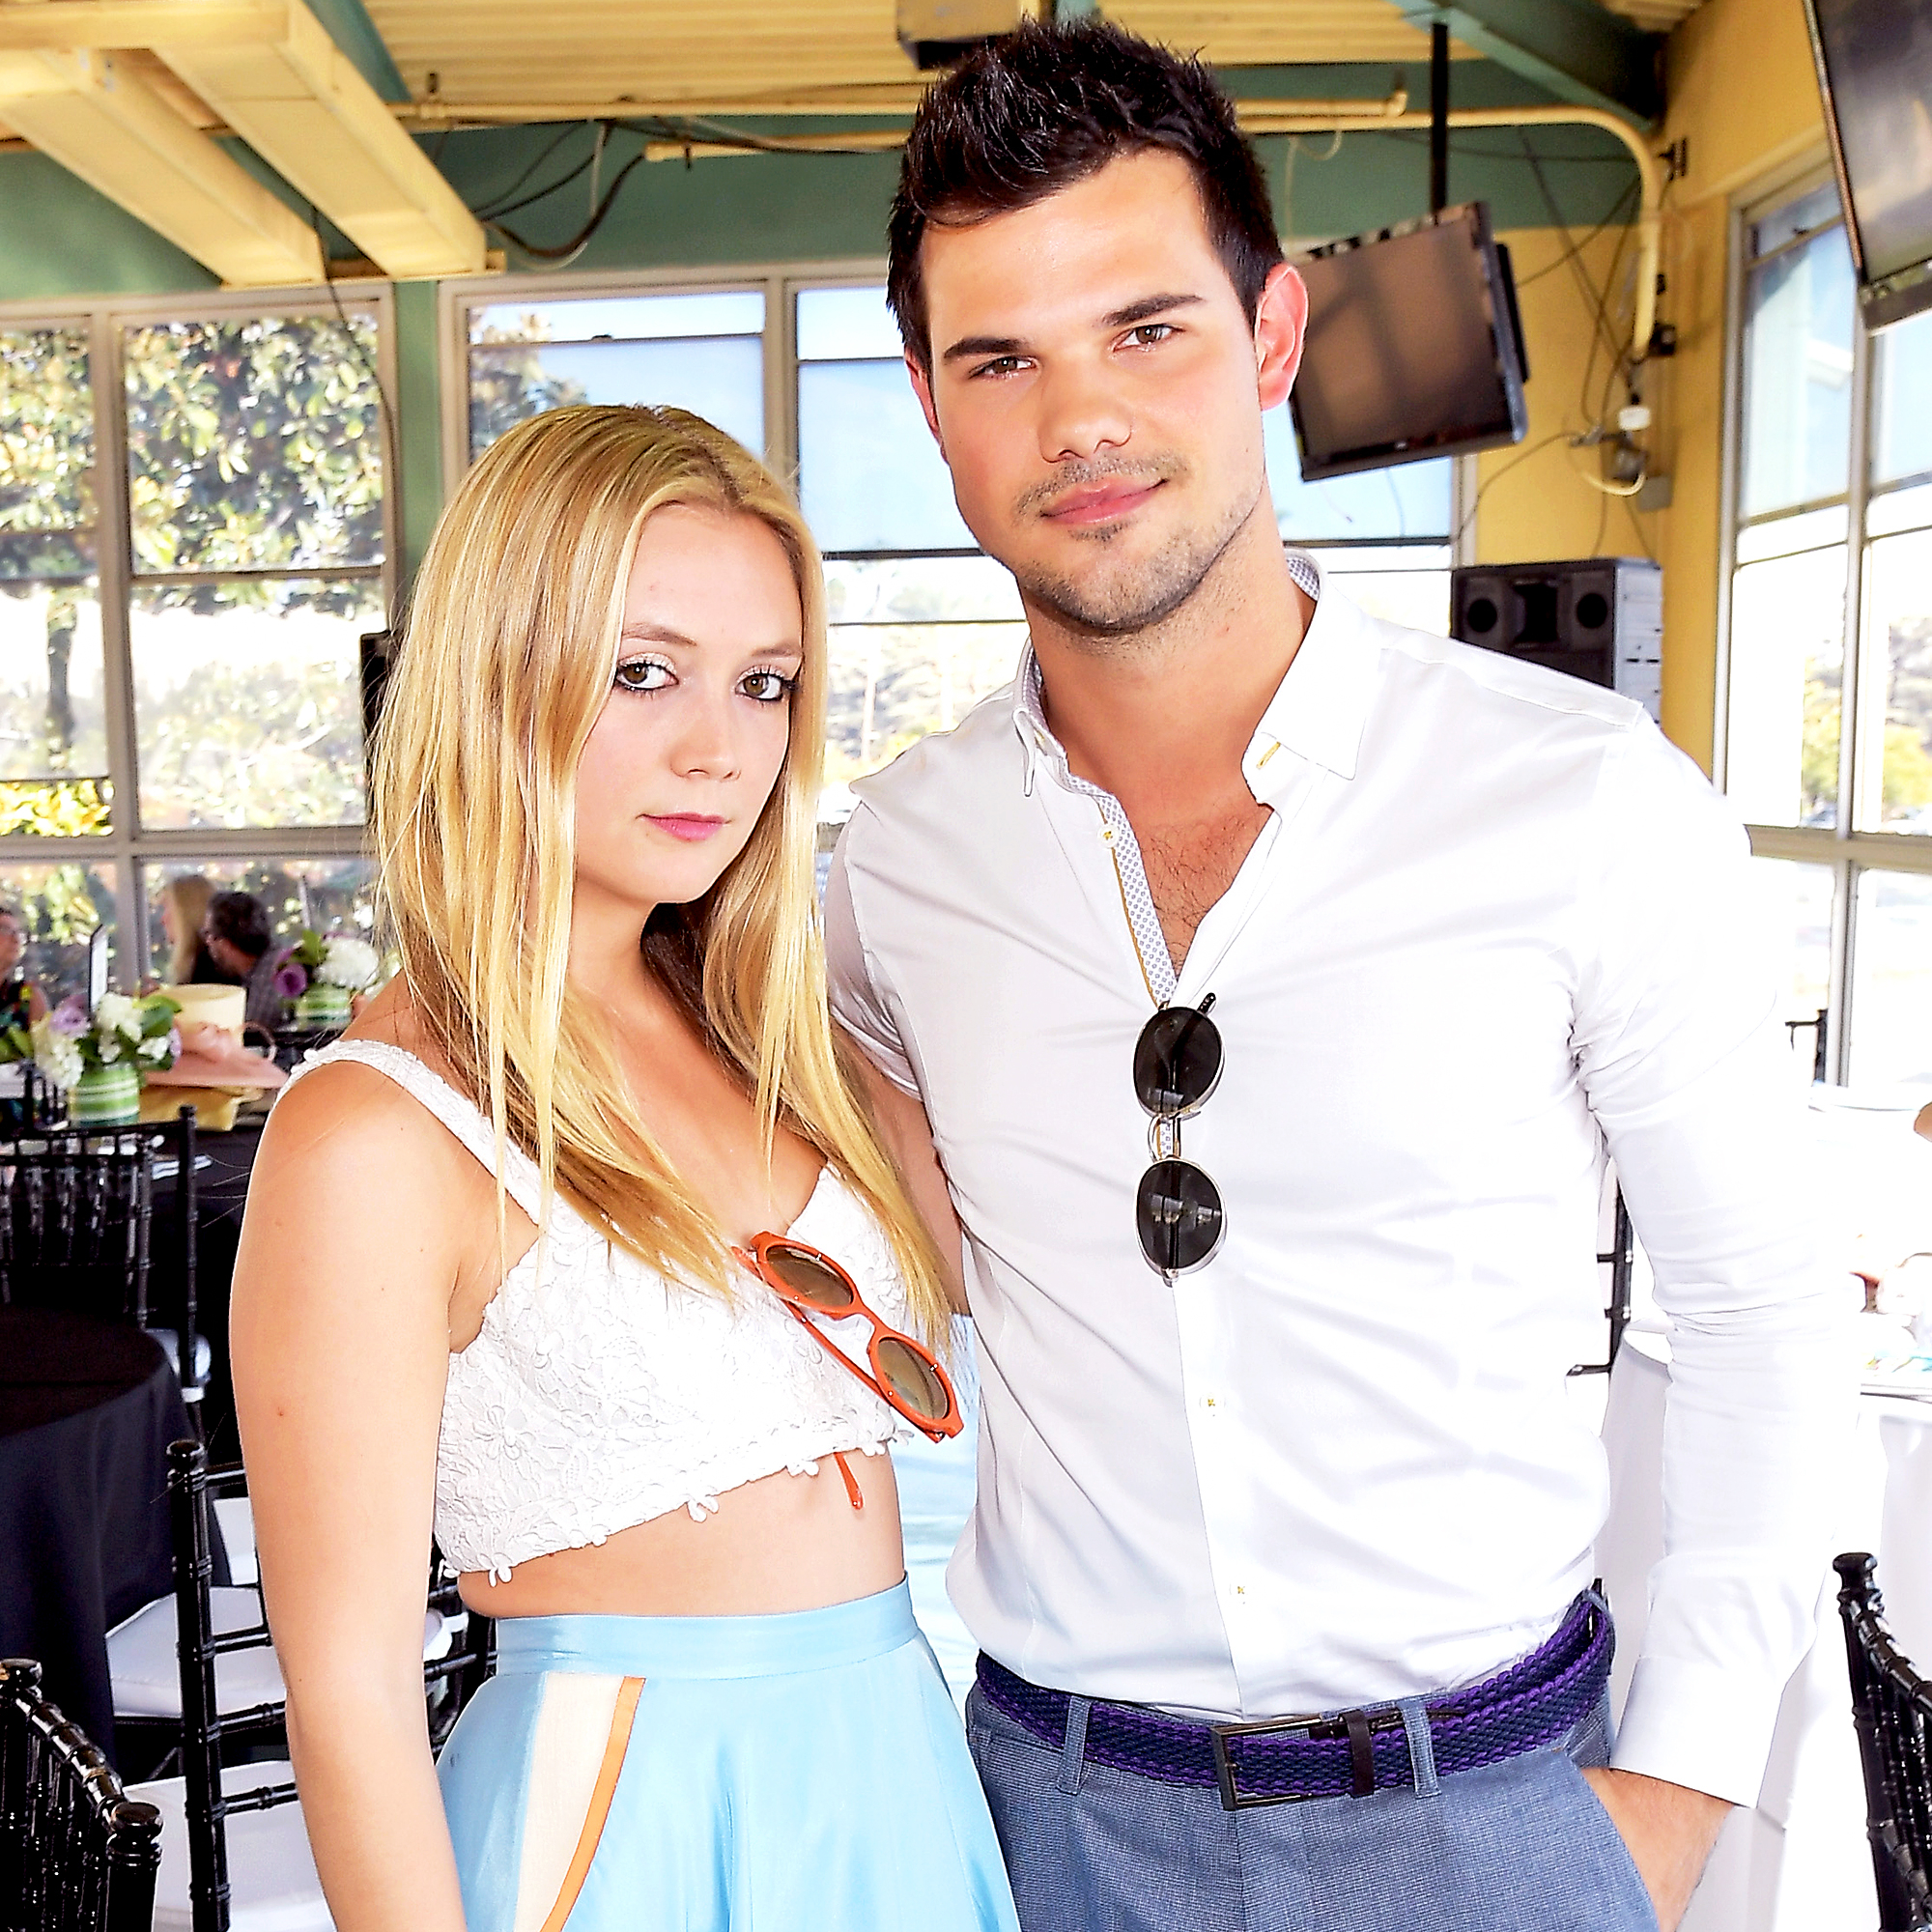 Who is taylor lautner dating right now